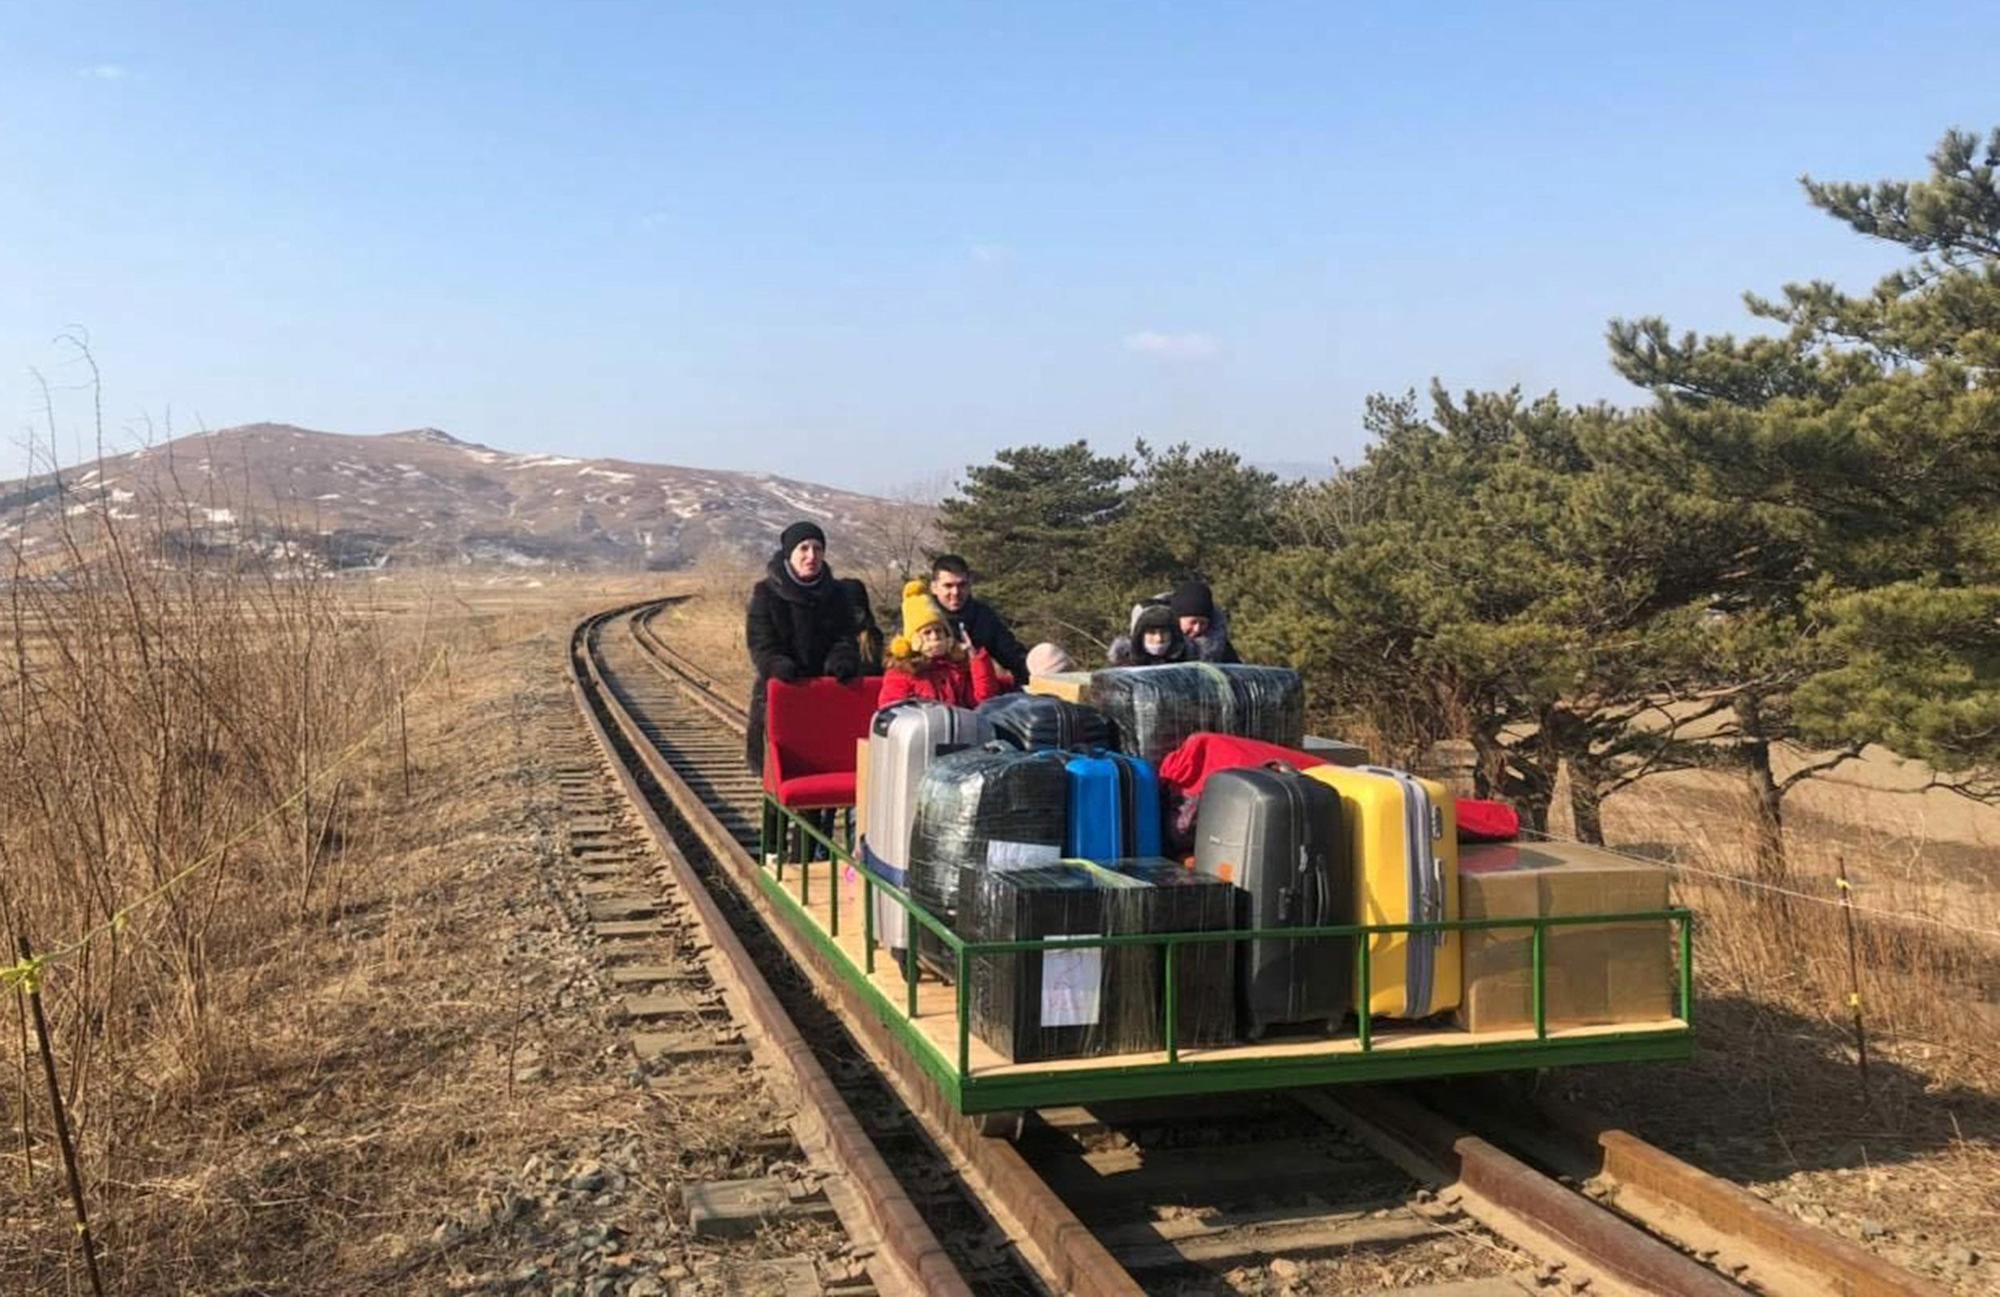 Russian diplomats leave North Korea by hand-pushed railcar after Covid closes borders